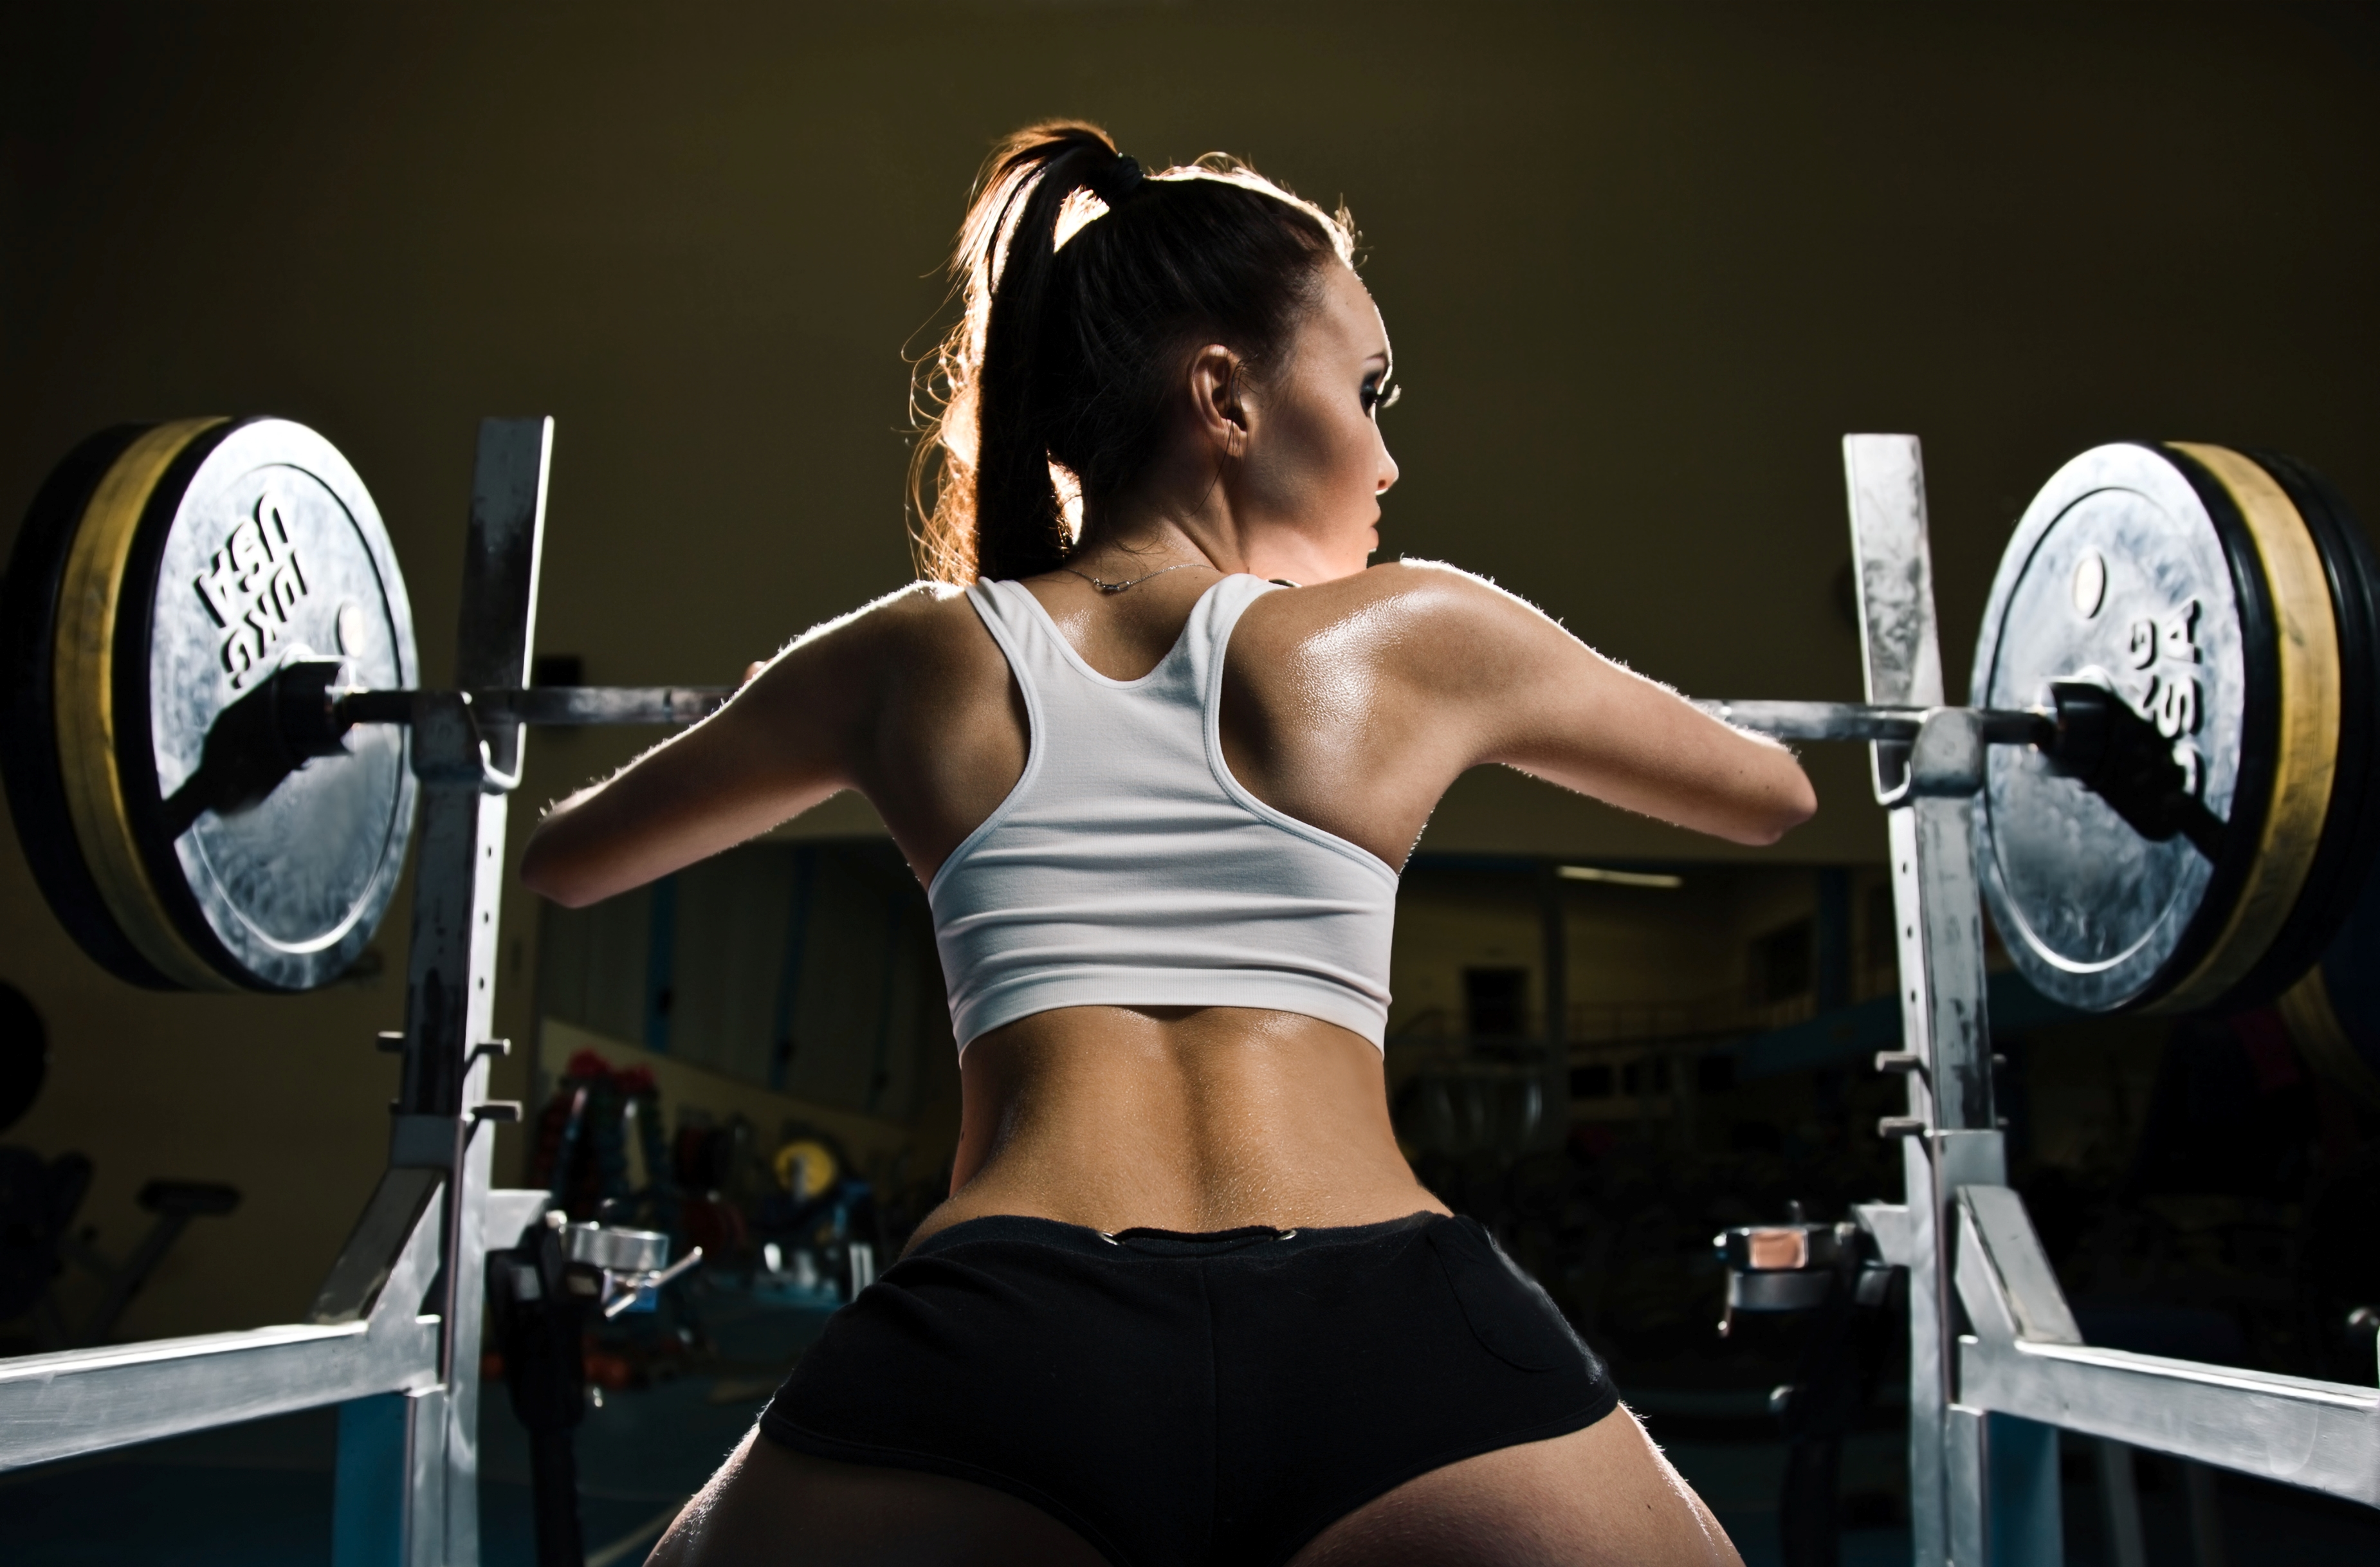 Workout Rules To Ignore